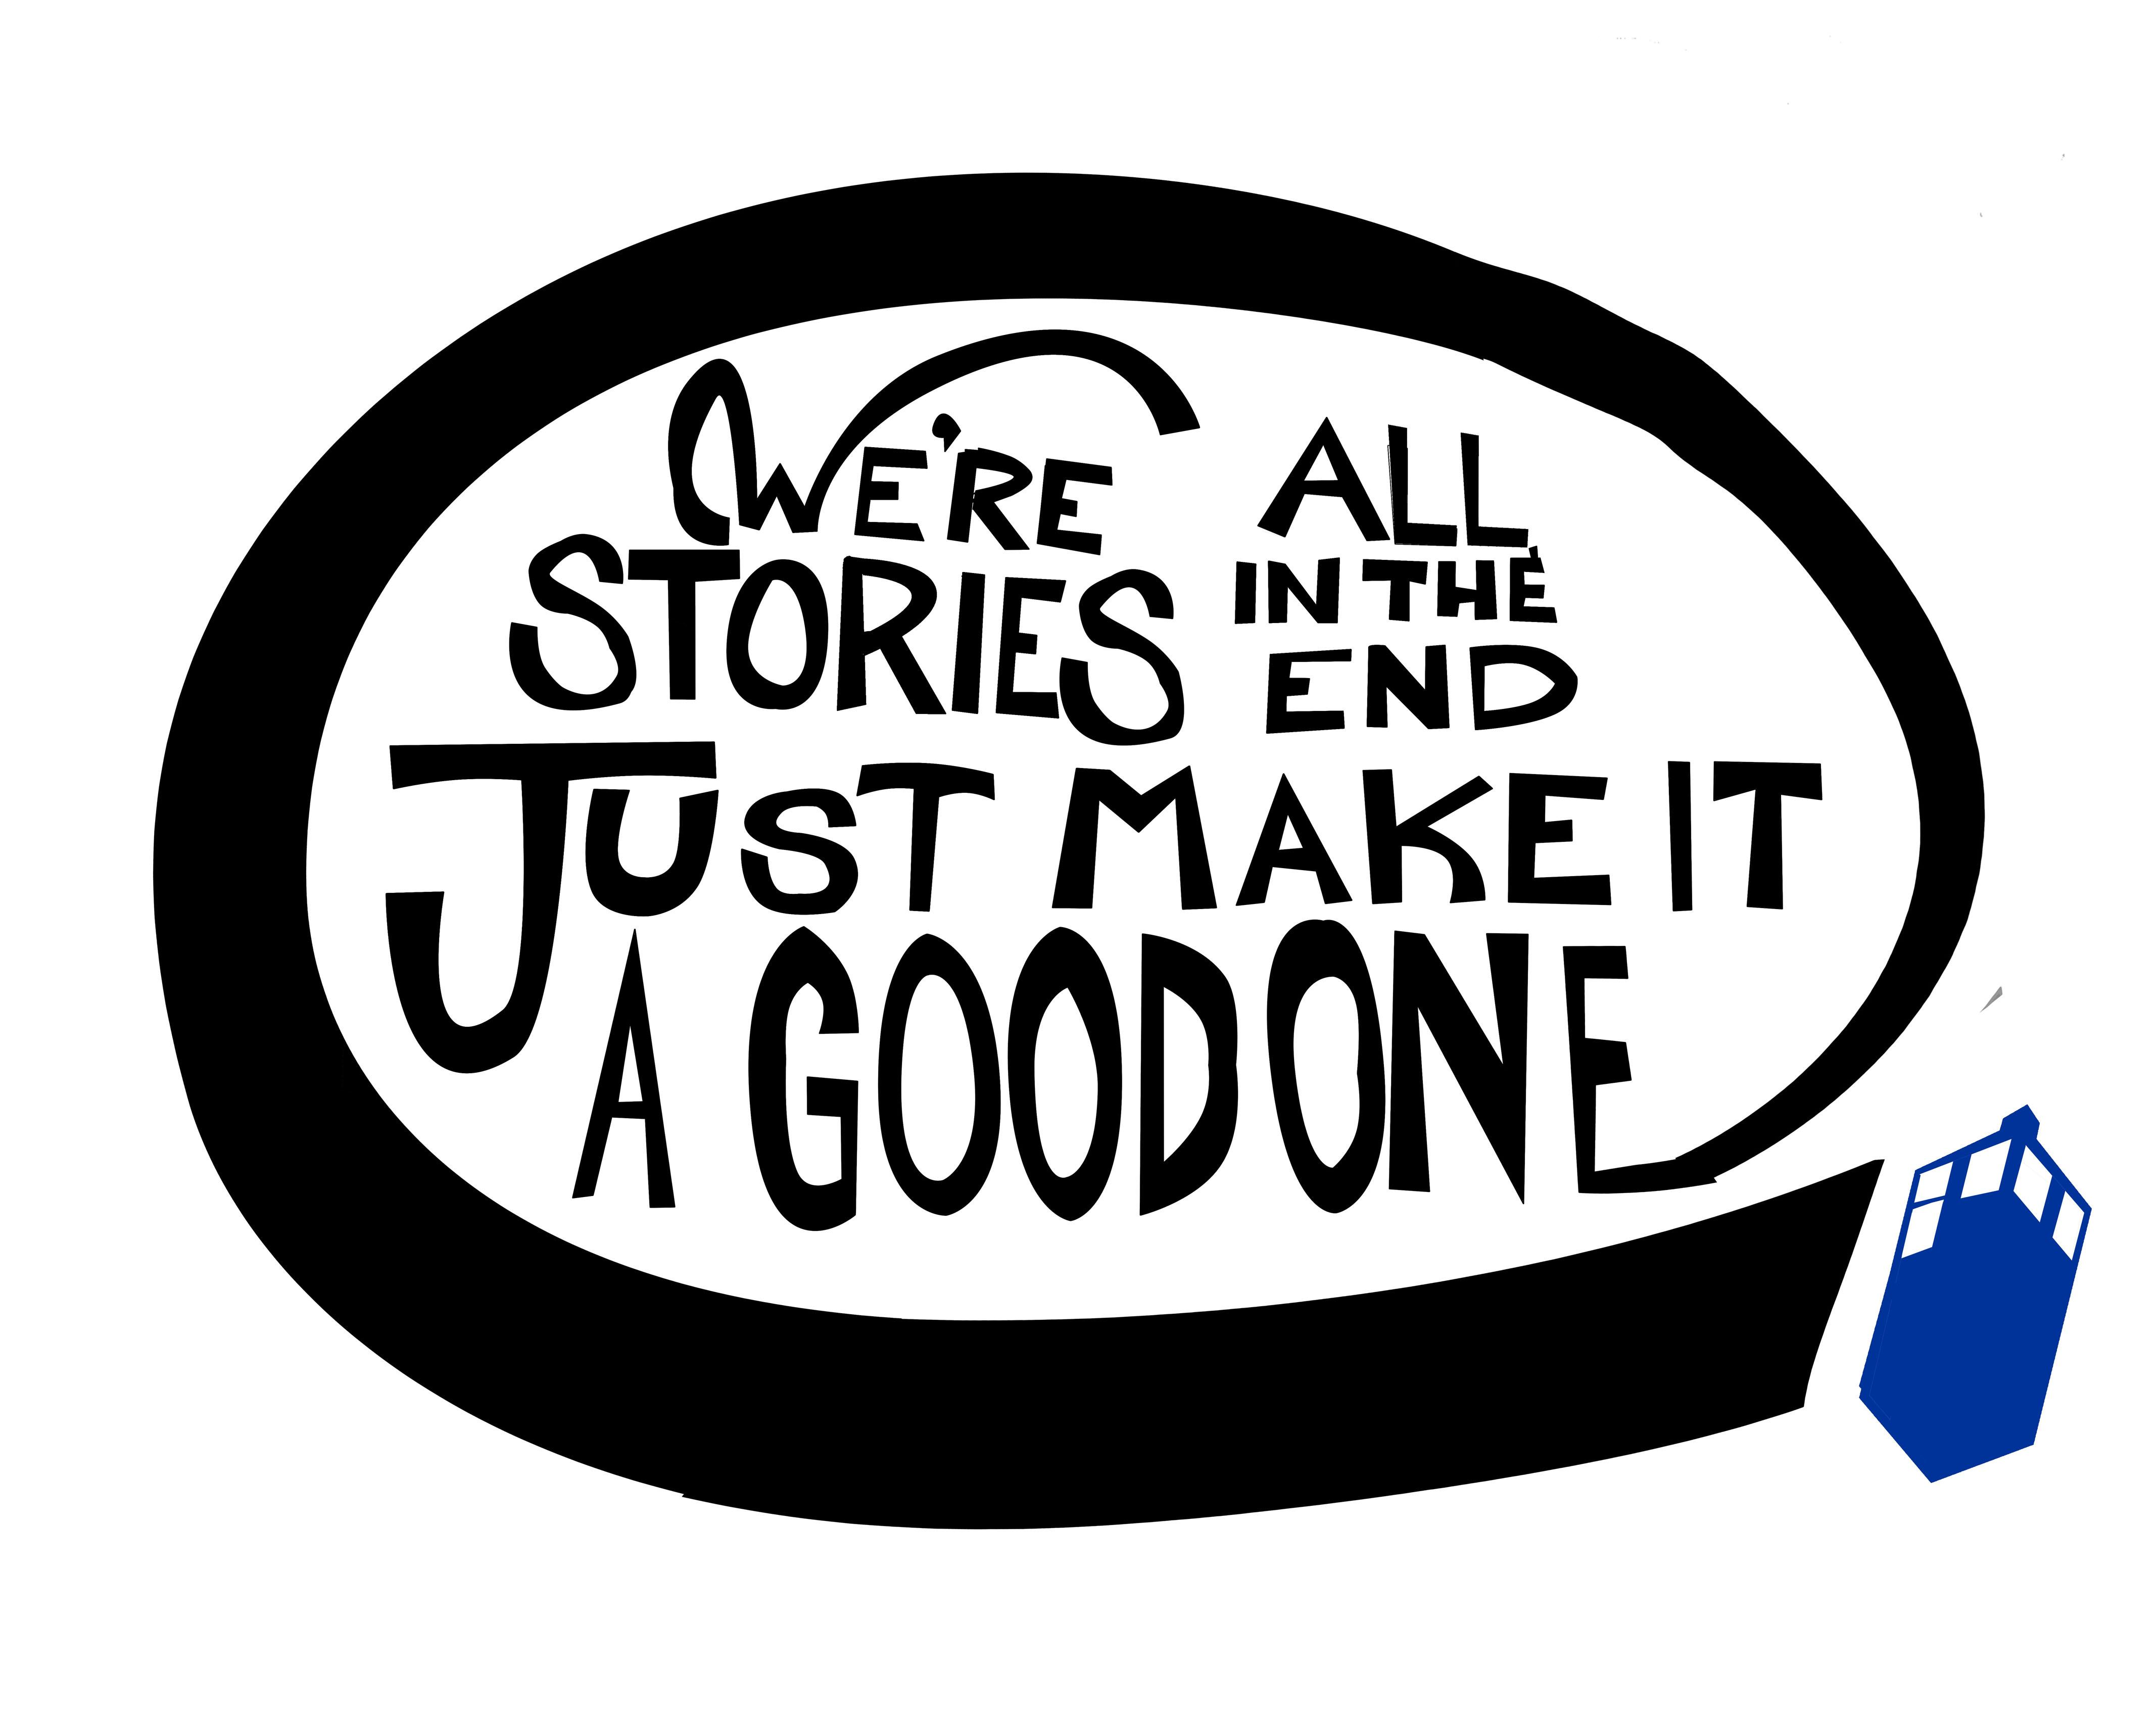 We're all stories in the end. Make it a good one eh? - image 7 - student project